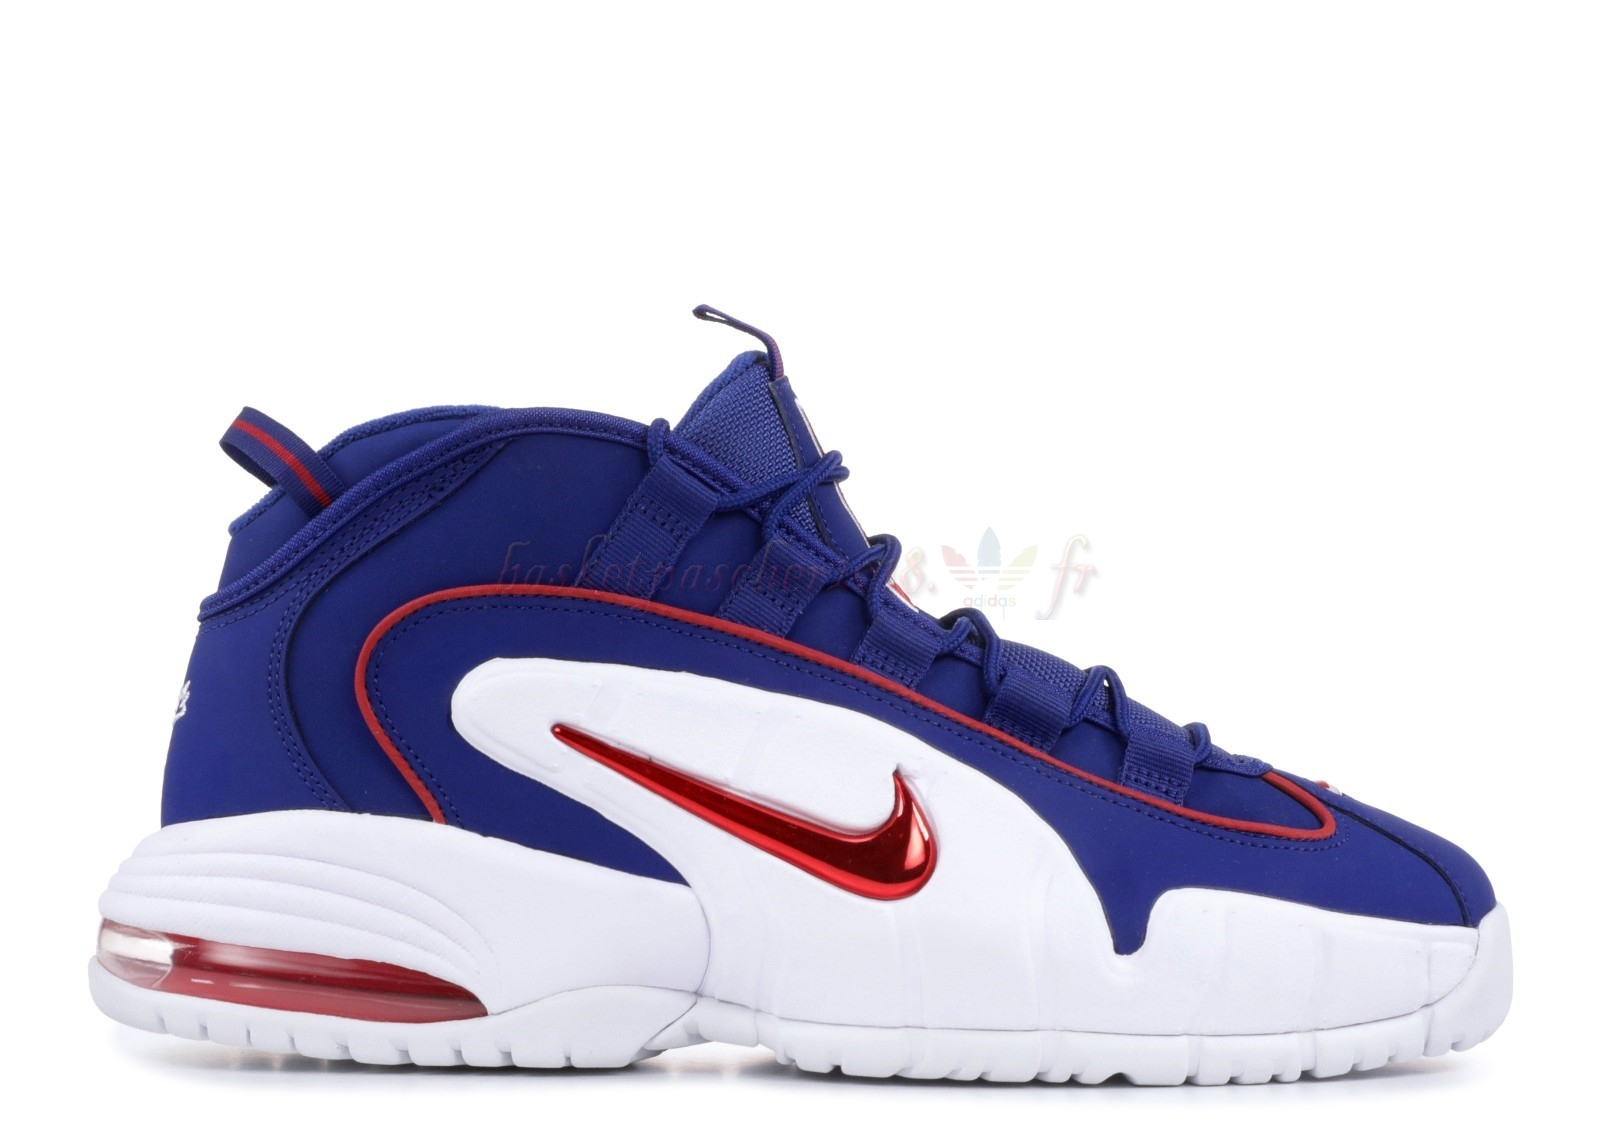 "Vente Chaude Chaussures De Basketball Homme Nike Air Max Penny ""Lil Penny"" Bleu Rouge Blanc (685153-400) Pas Cher"